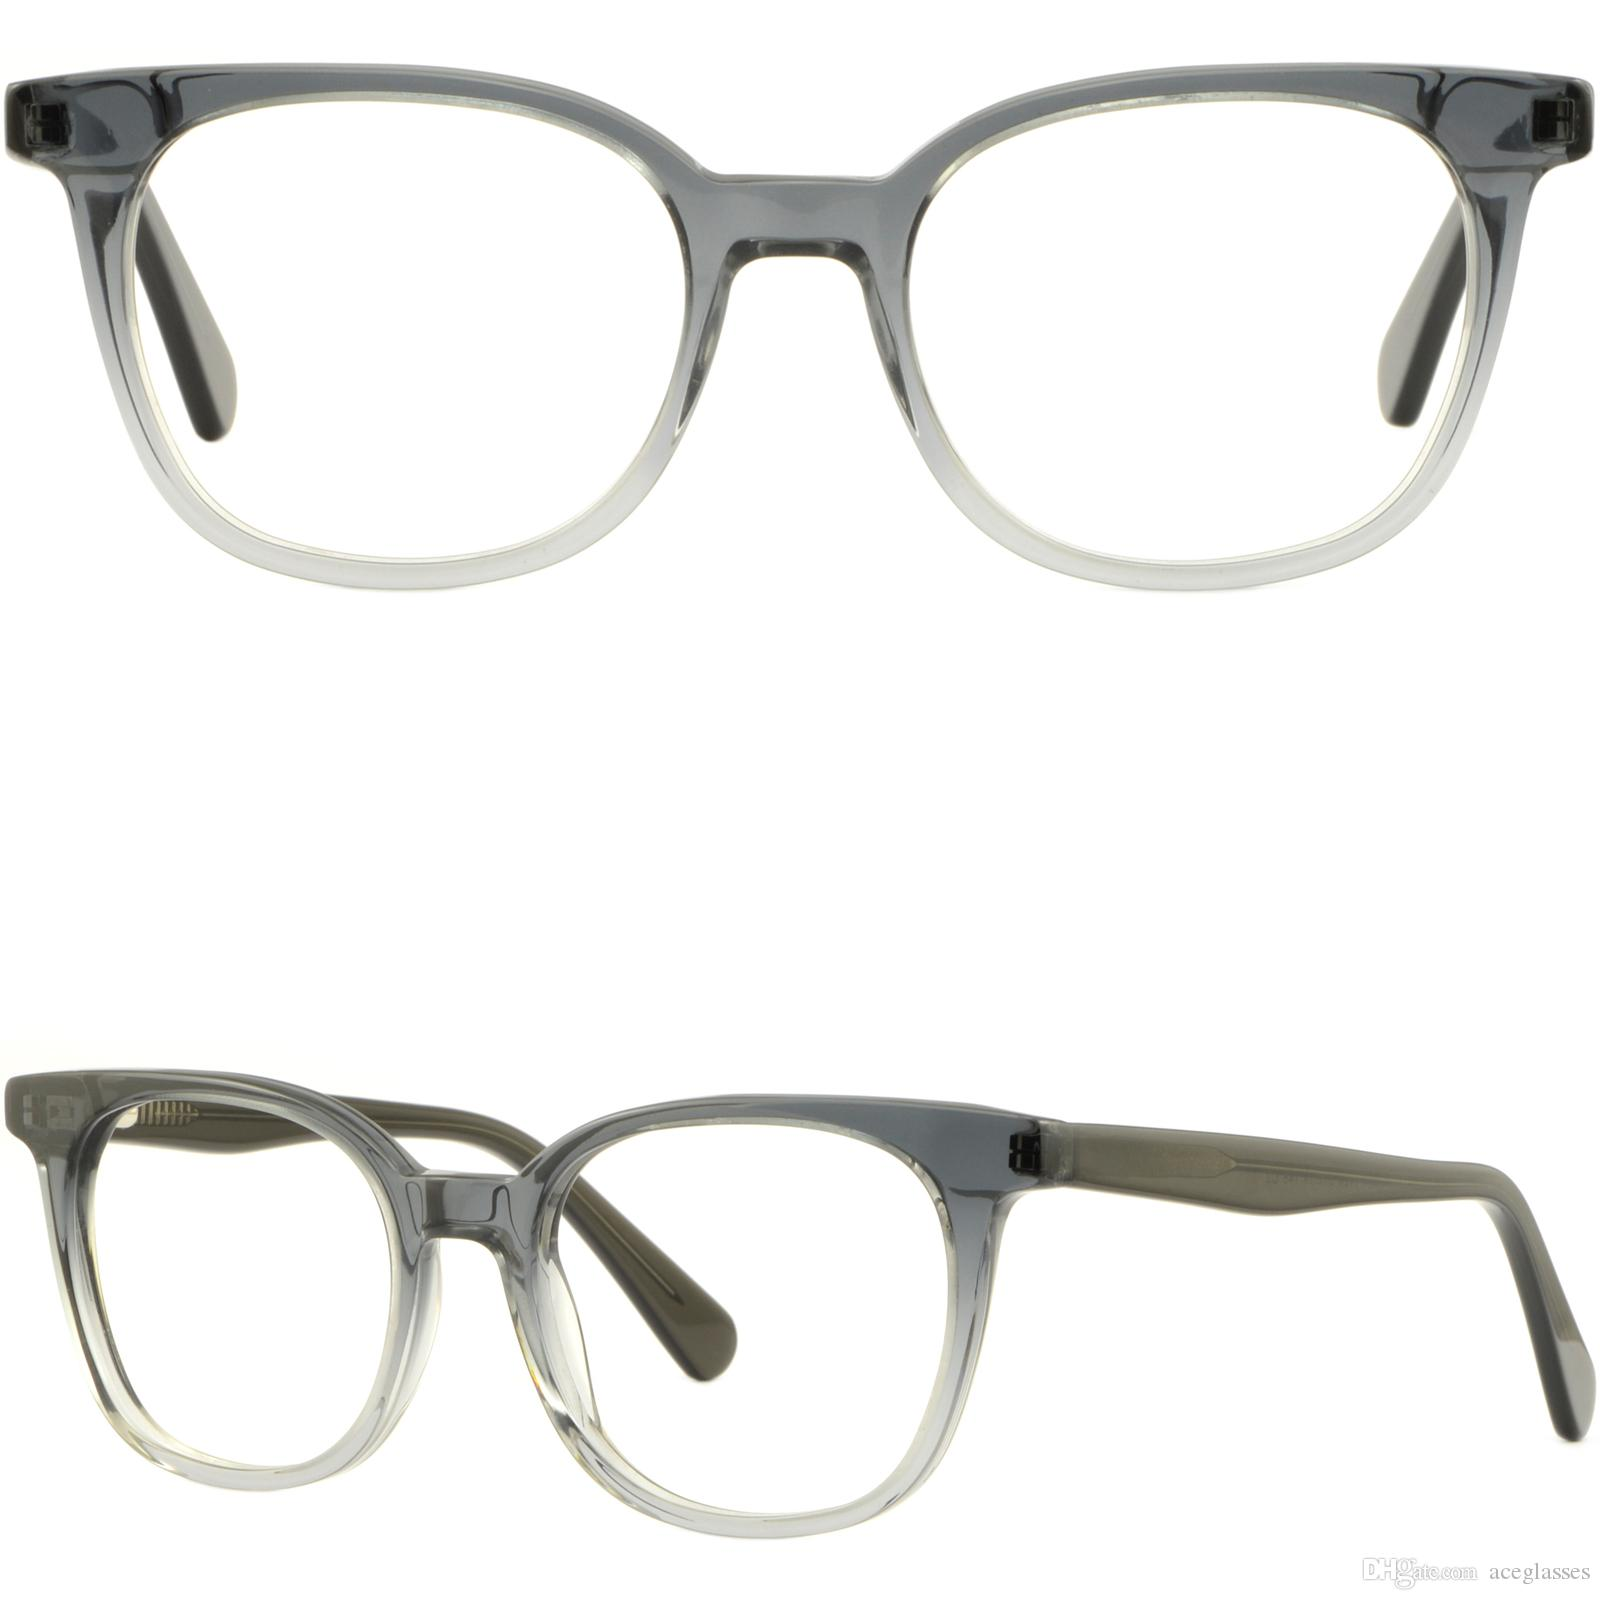 6f785cb51a2c4e Square Men Women Acetate Frame Prescription Glasses Eyeglasses Spring Hinge  Gray Hipster Glasses Frames Kids Glasses Frames From Aceglasses